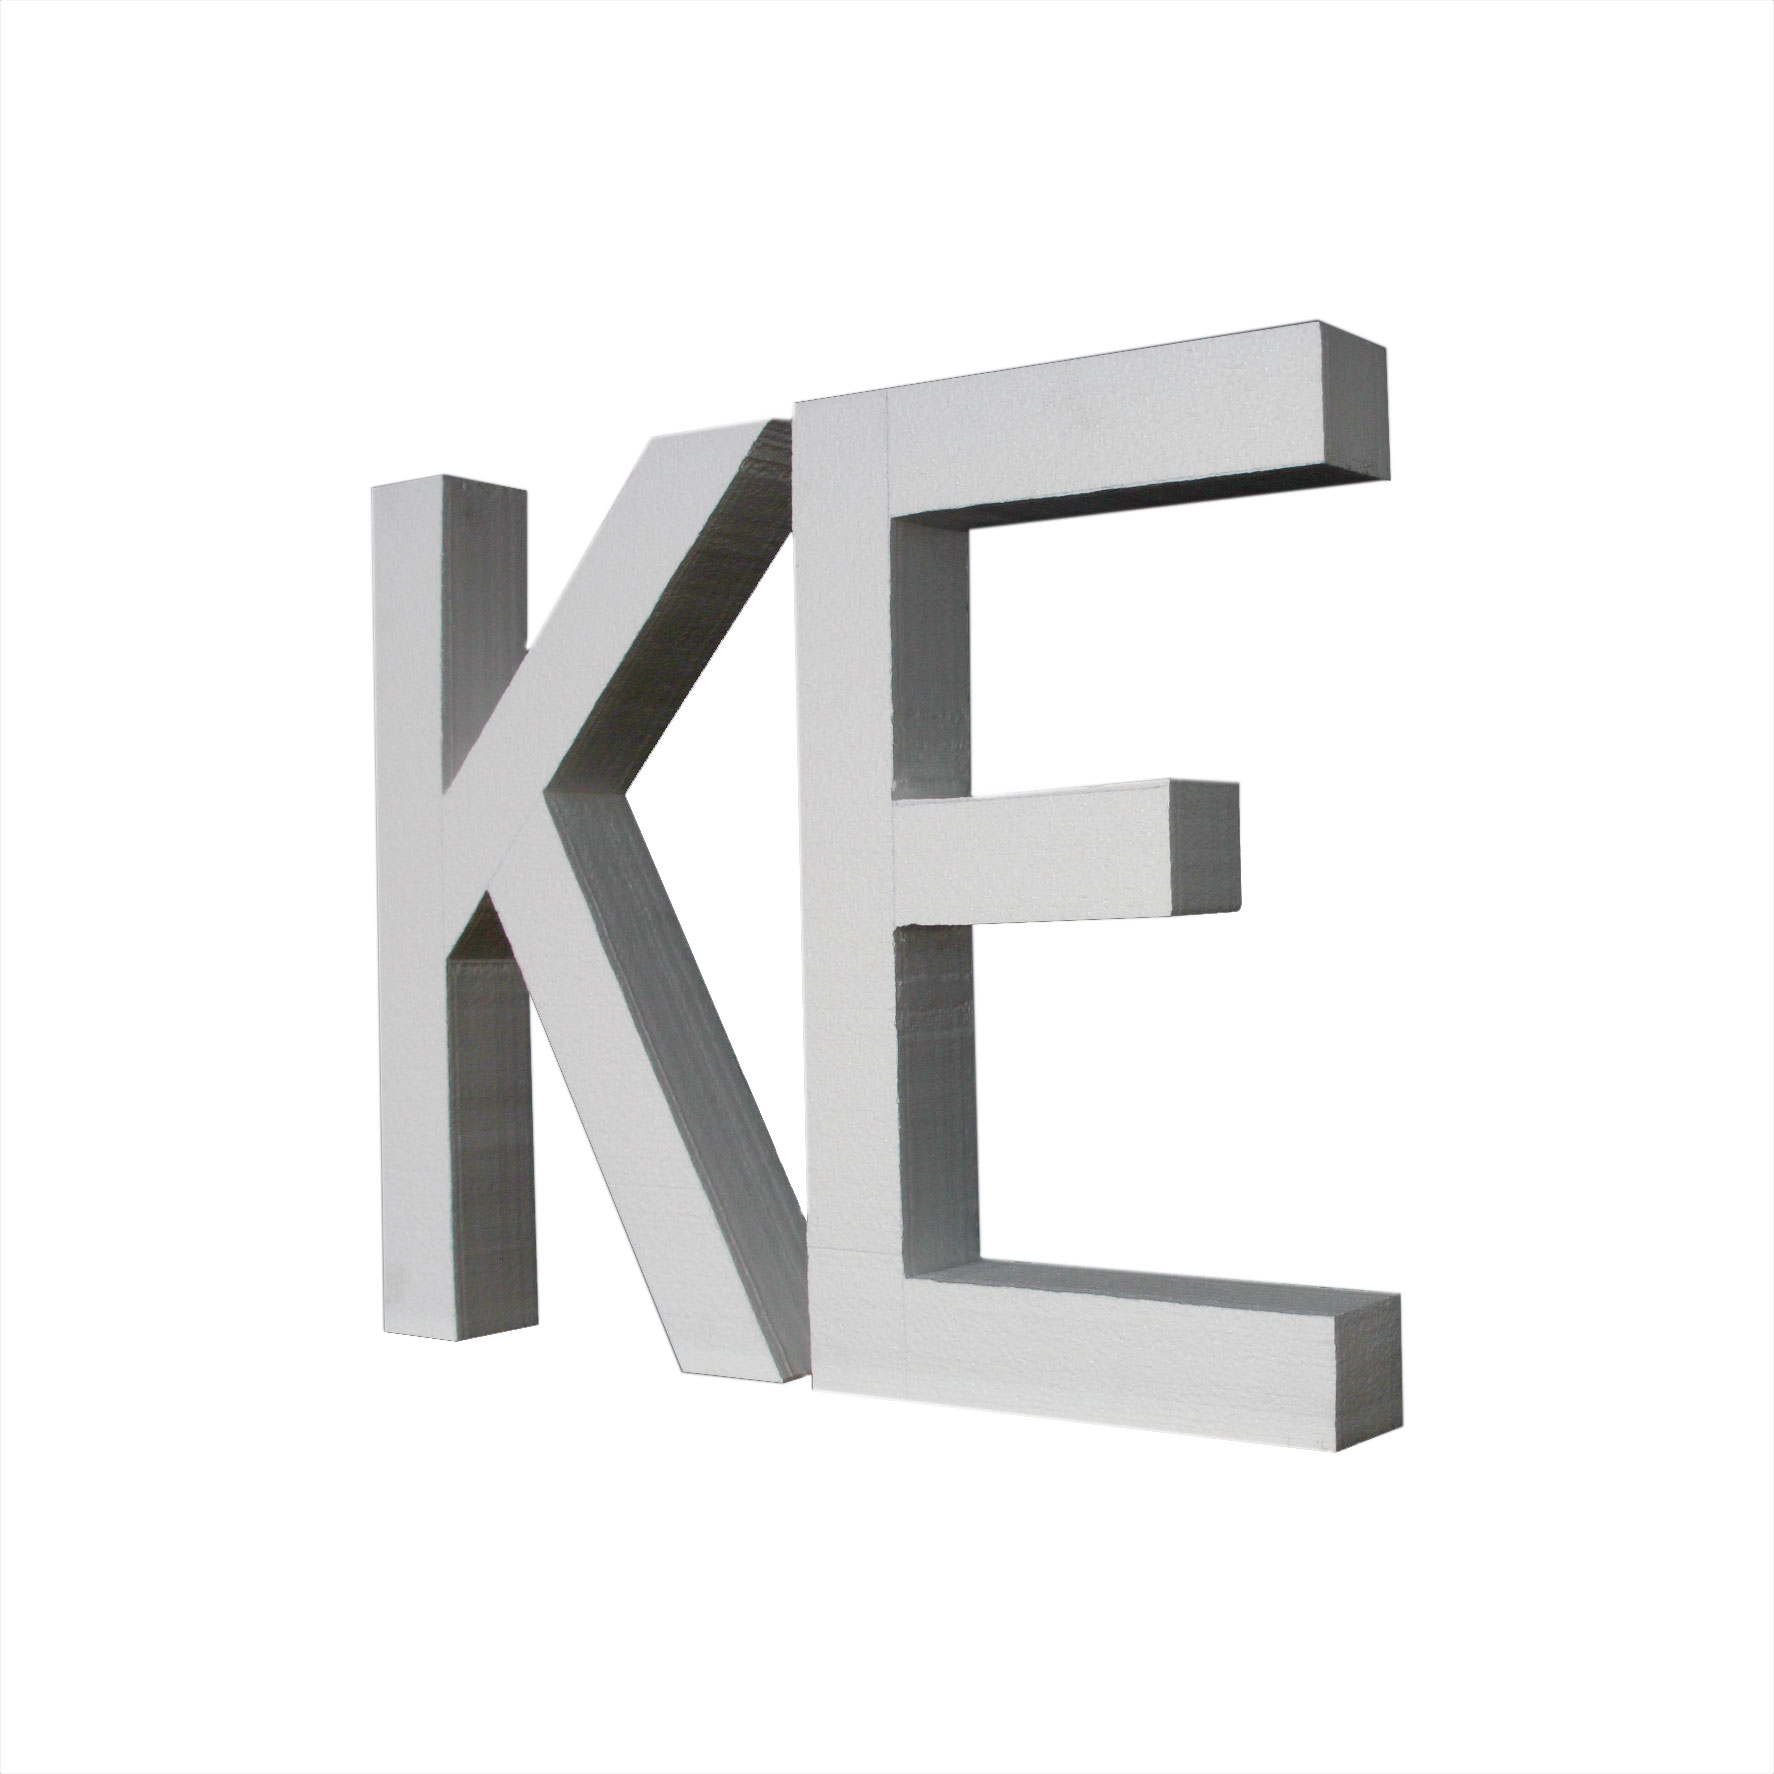 Products | Kaylite King | Expanded Polystyrene Manufacturing